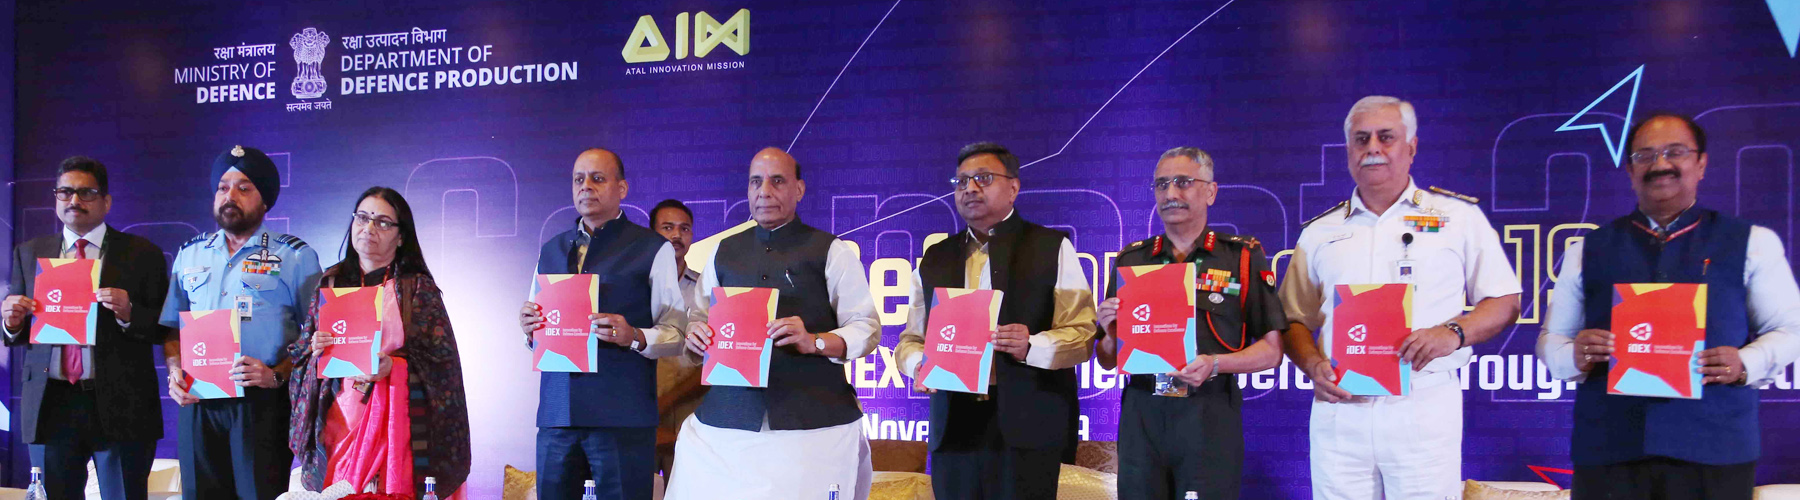 Raksha Mantri Shri Rajnath Singh releasing Compendium of iDEX Guidelines at Def-Connect under the aegis of Innovations for Defence Excellence (iDEX) in New Delhi on Monday, November 11, 2019